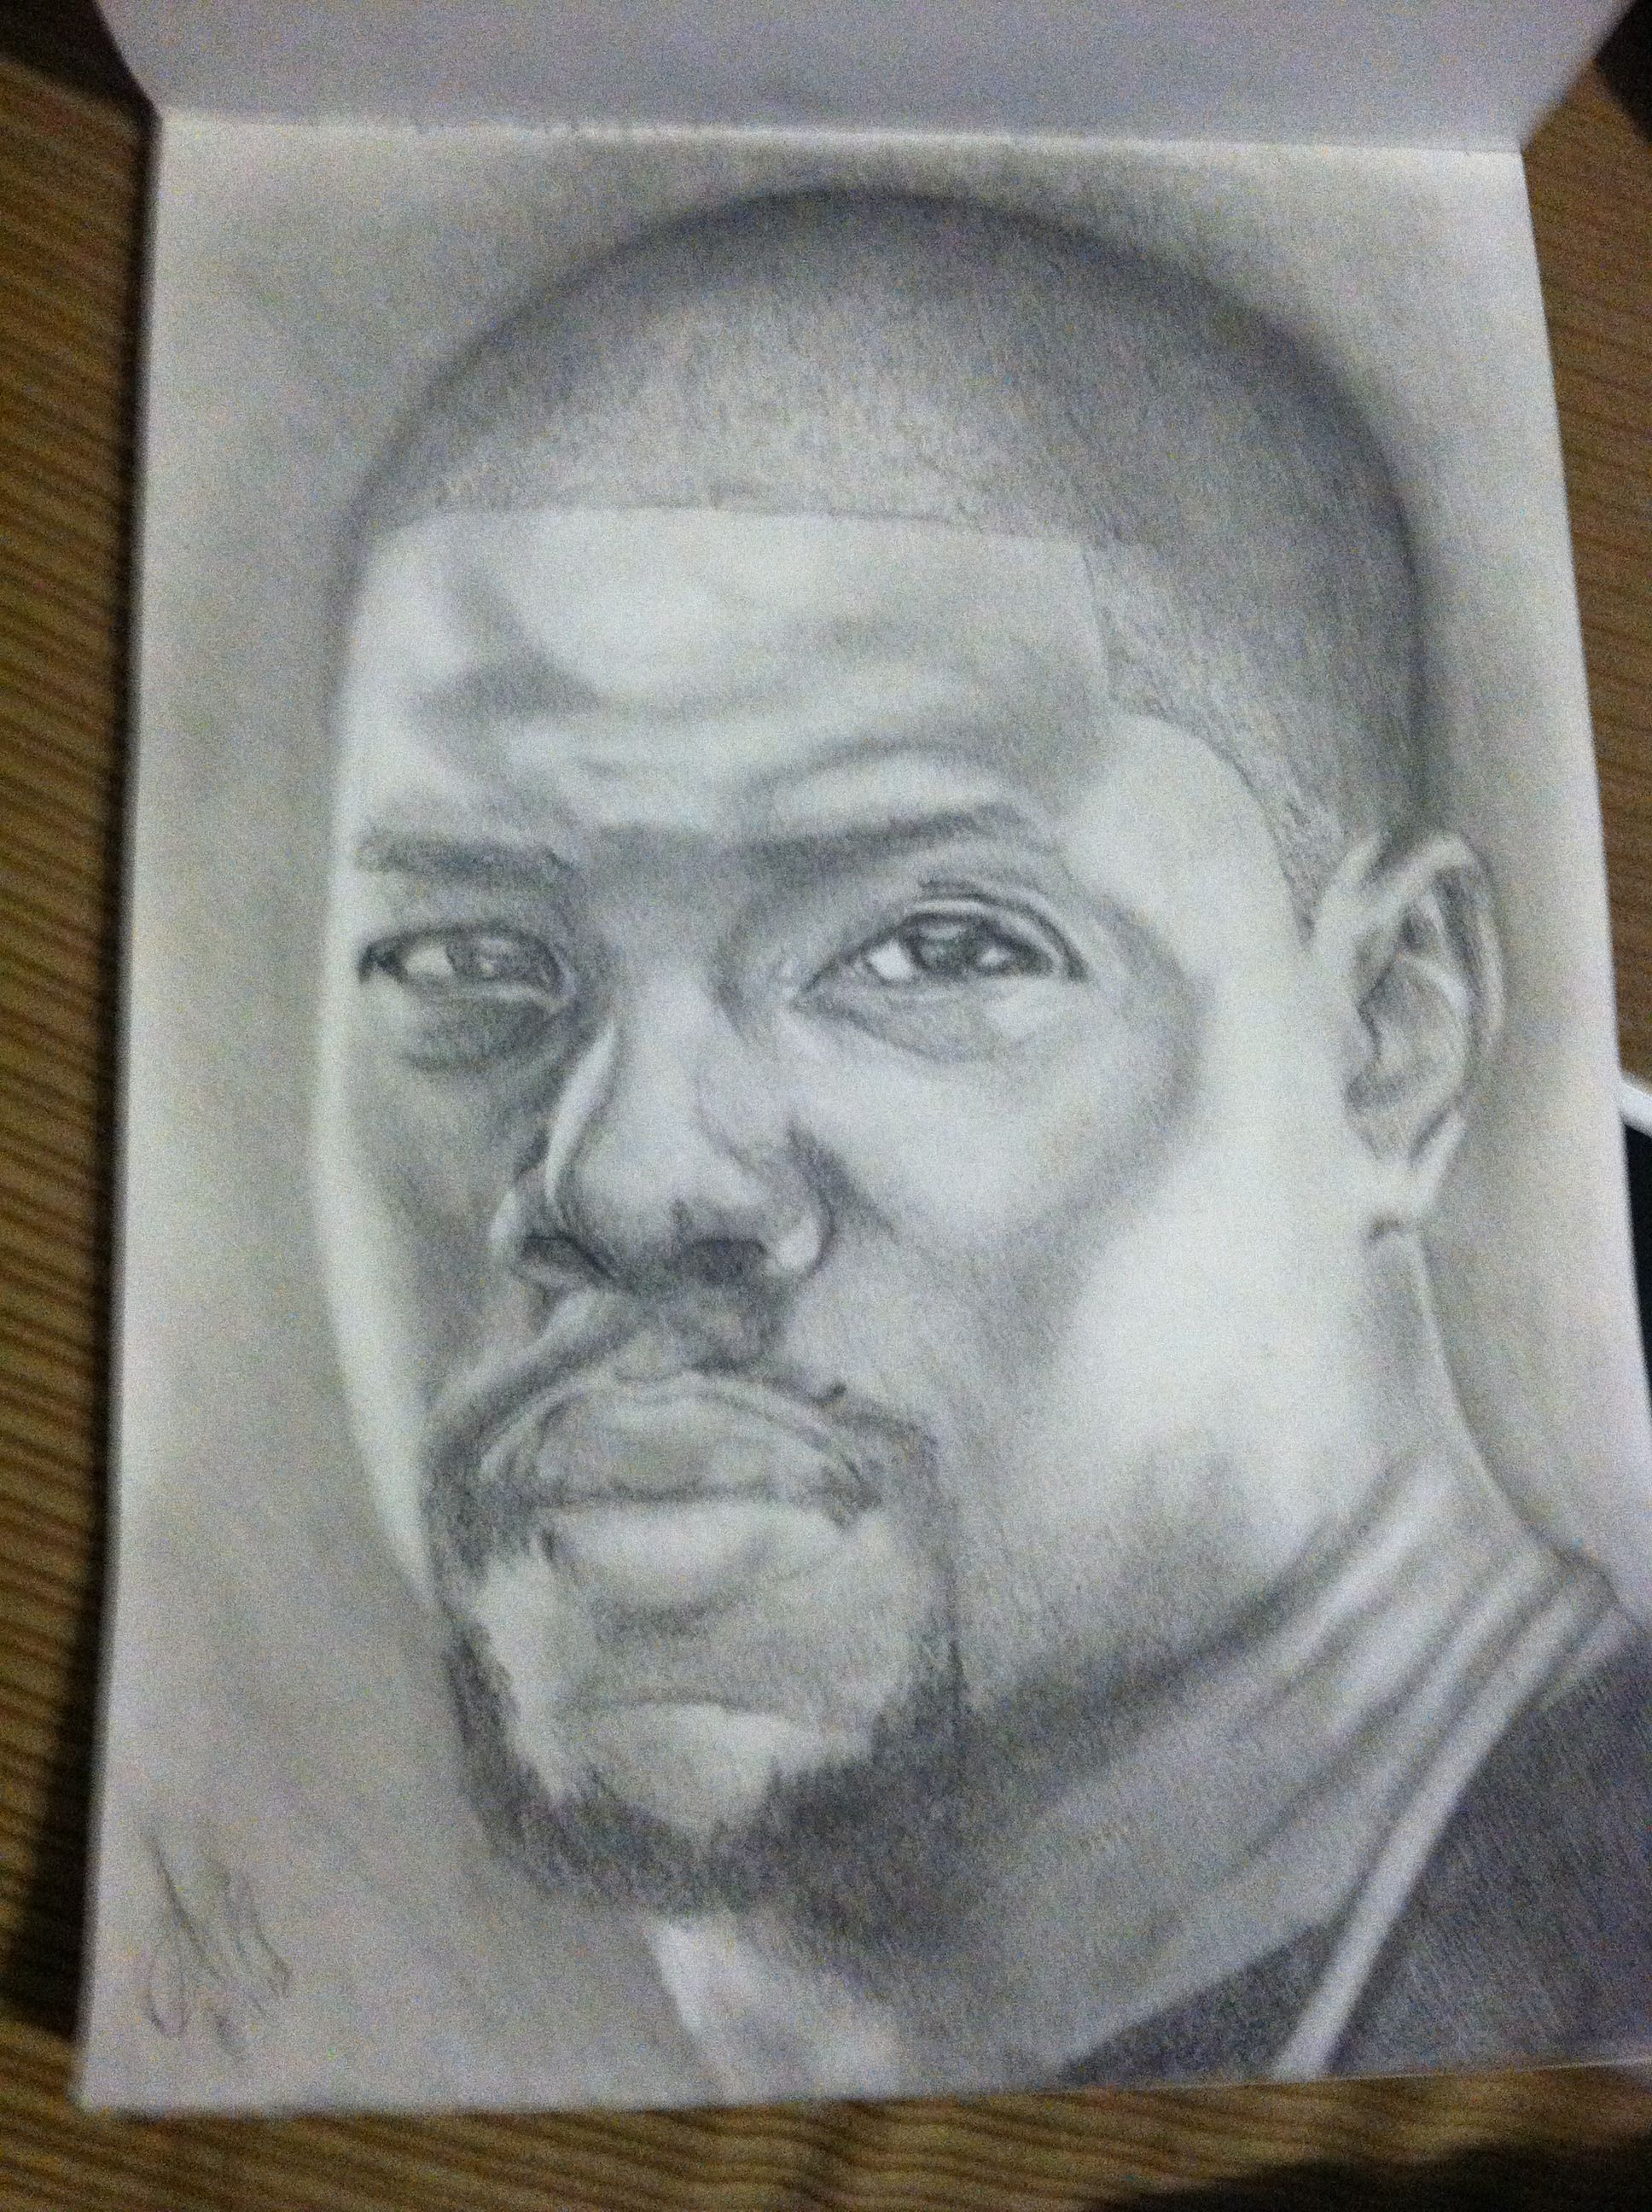 My drawing of kevin hart